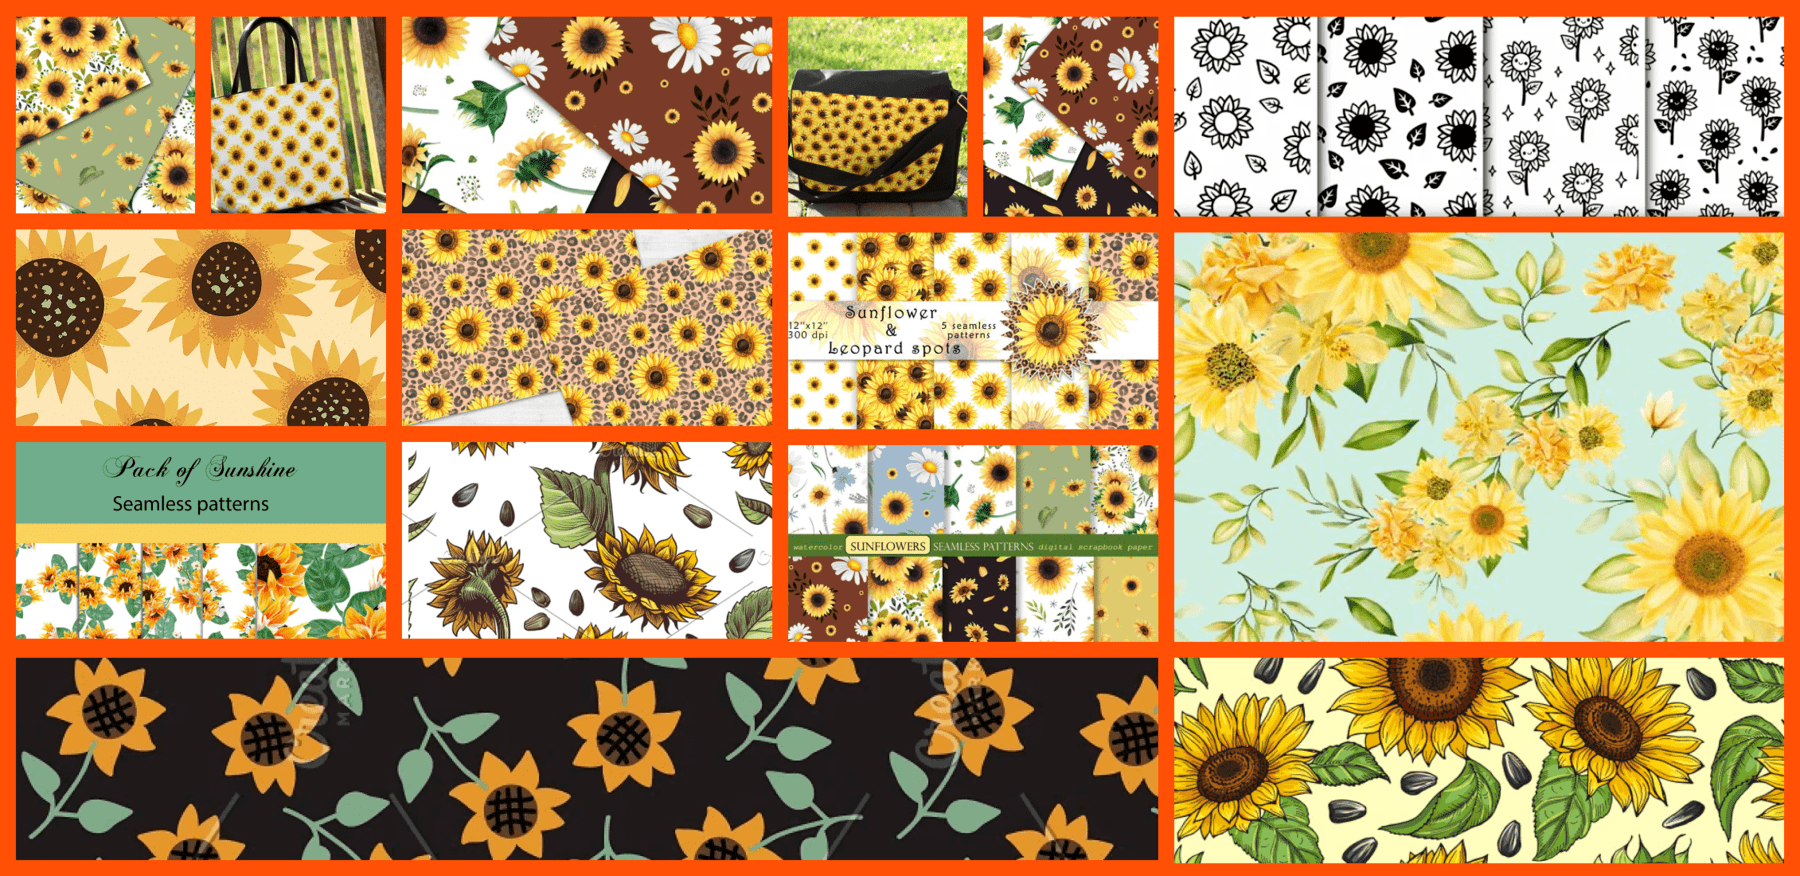 Best 15 Sunflower Pattern Images in 2021 Example.